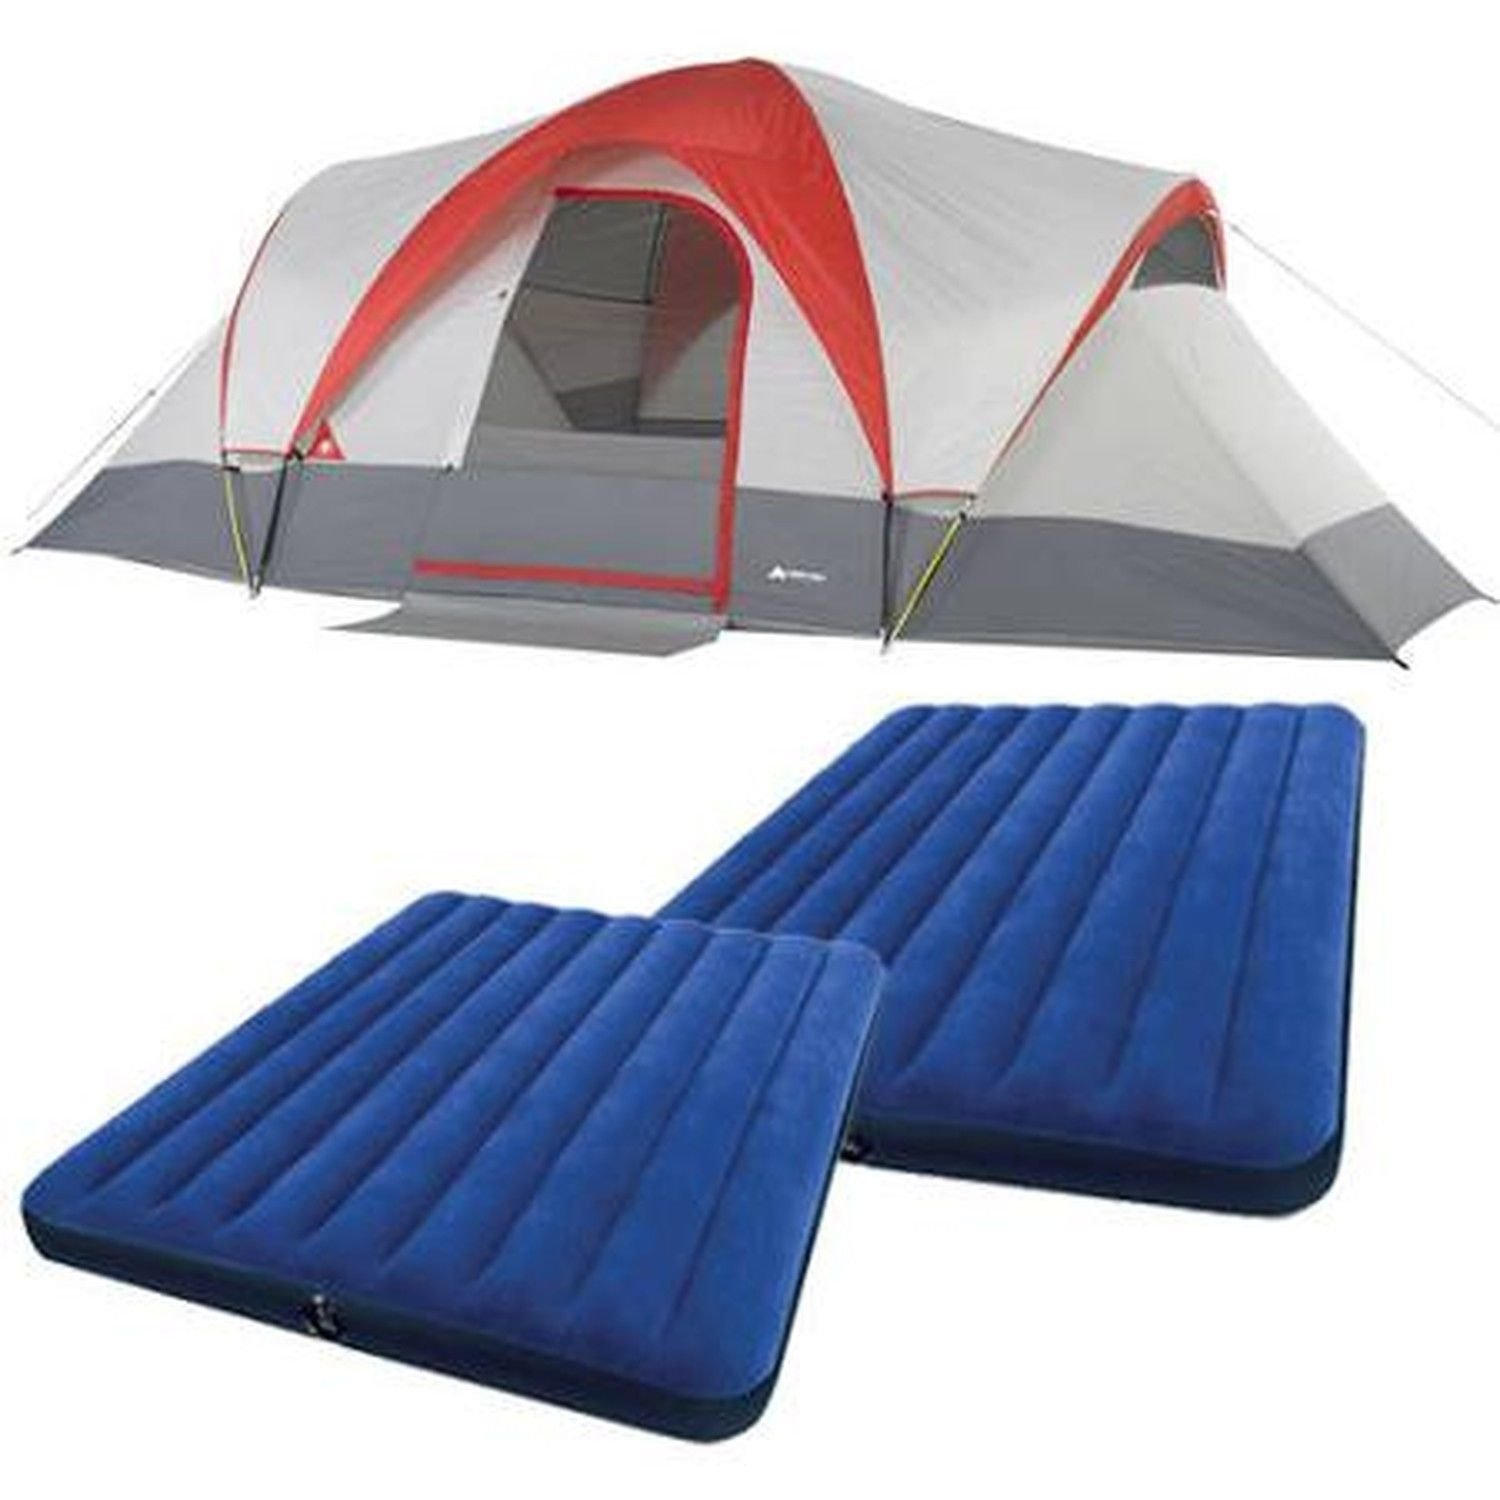 Amazon.com  Ozark Trail Weatherbuster 9 Person Dome Tent with Two Queen Airbeds Bundle  Sports u0026 Outdoors  sc 1 st  Amazon.com & Amazon.com : Ozark Trail Weatherbuster 9 Person Dome Tent with Two ...